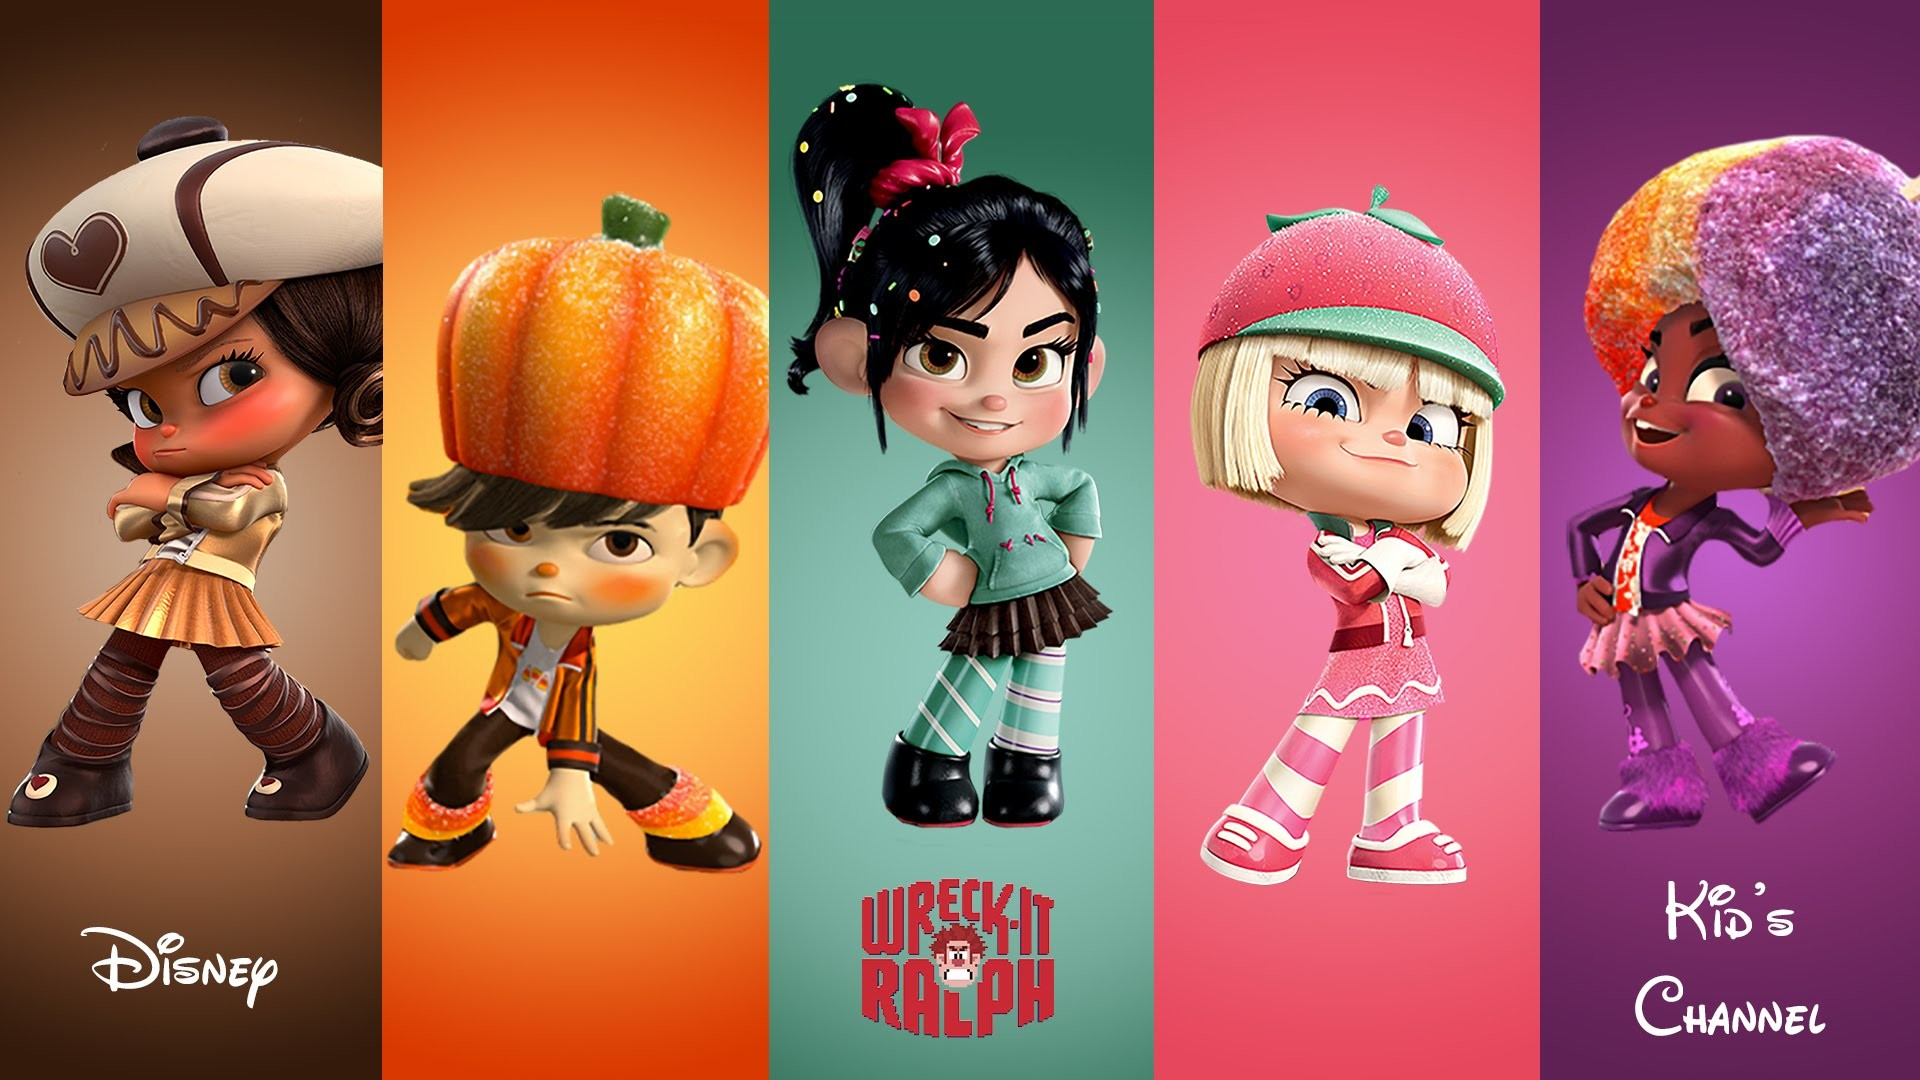 Wreck It Ralph Wallpaper Posted By Ryan Cunningham